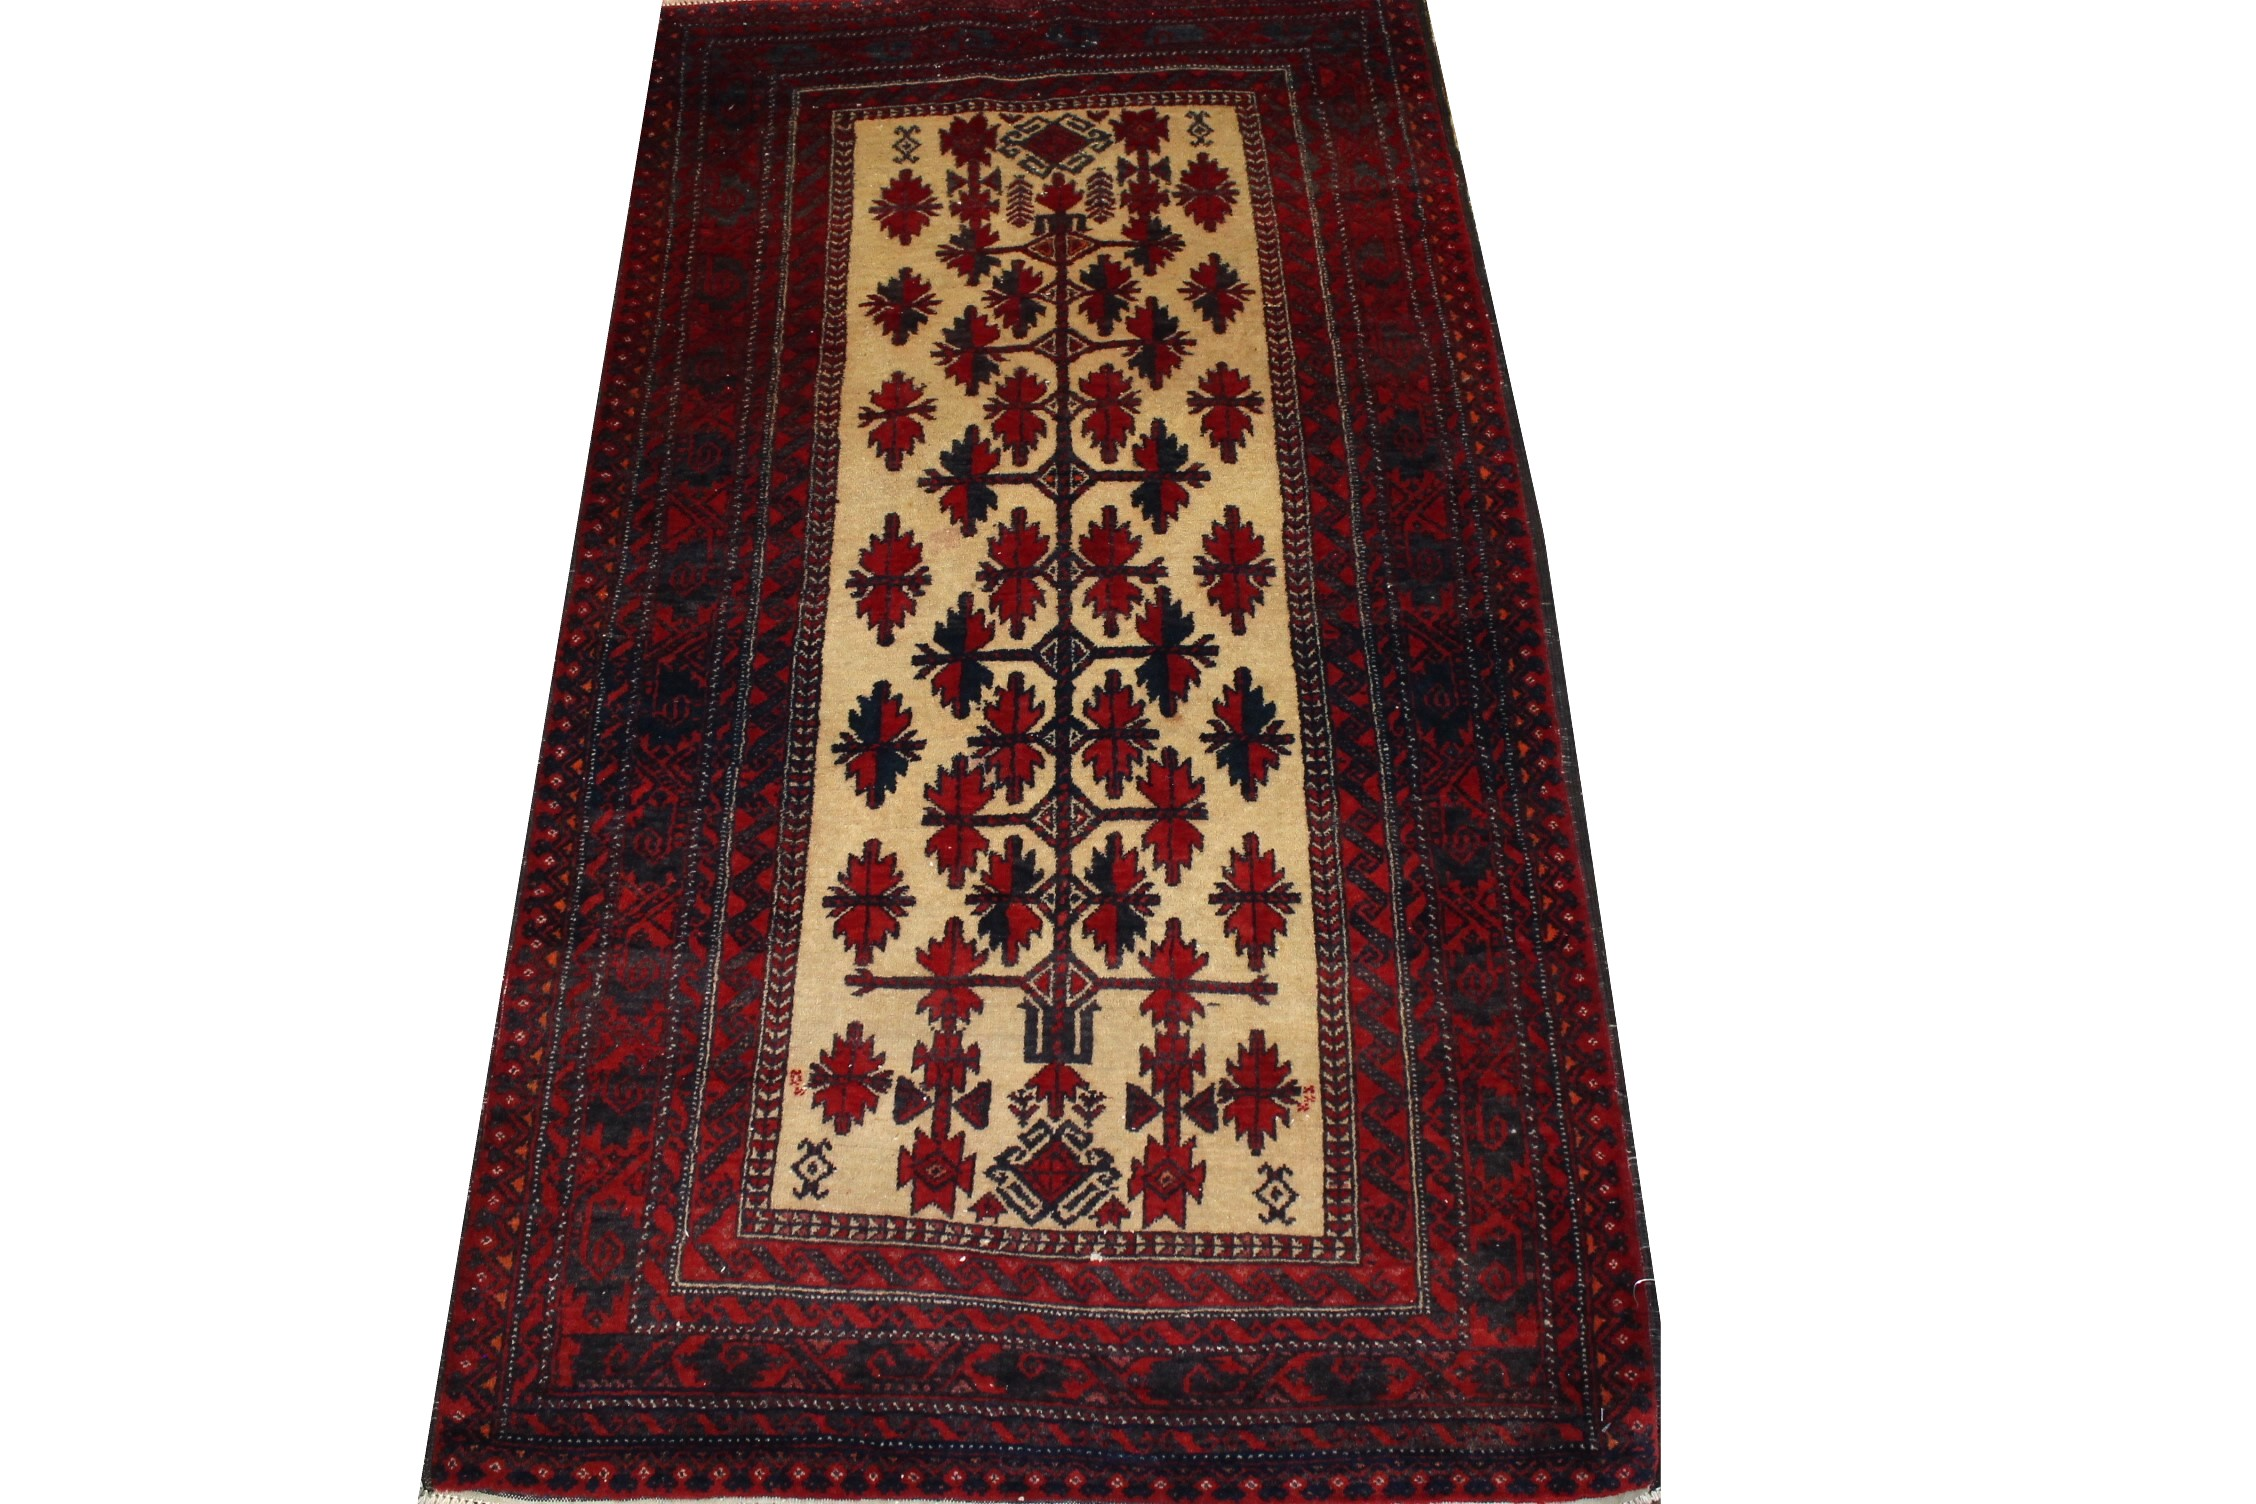 3x5 Tribal Hand Knotted Wool Area Rug - MR023153